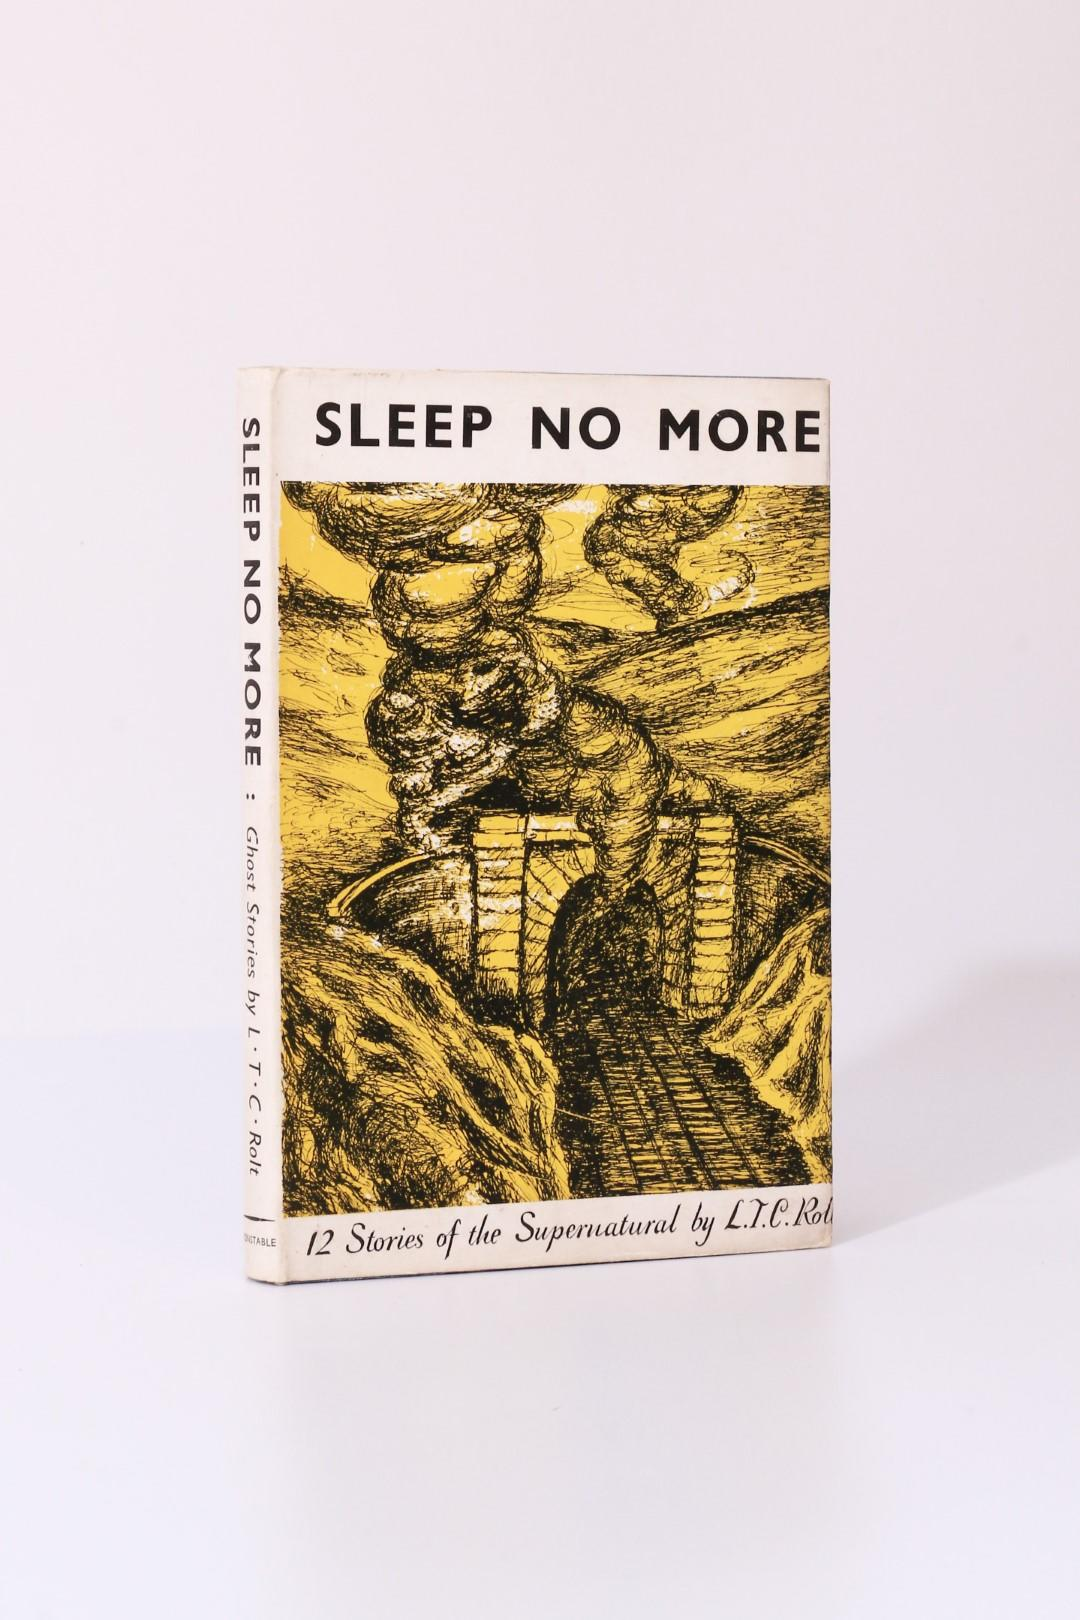 L.T.C. Rolt - Sleep No More - Constable, 1948, First Edition.